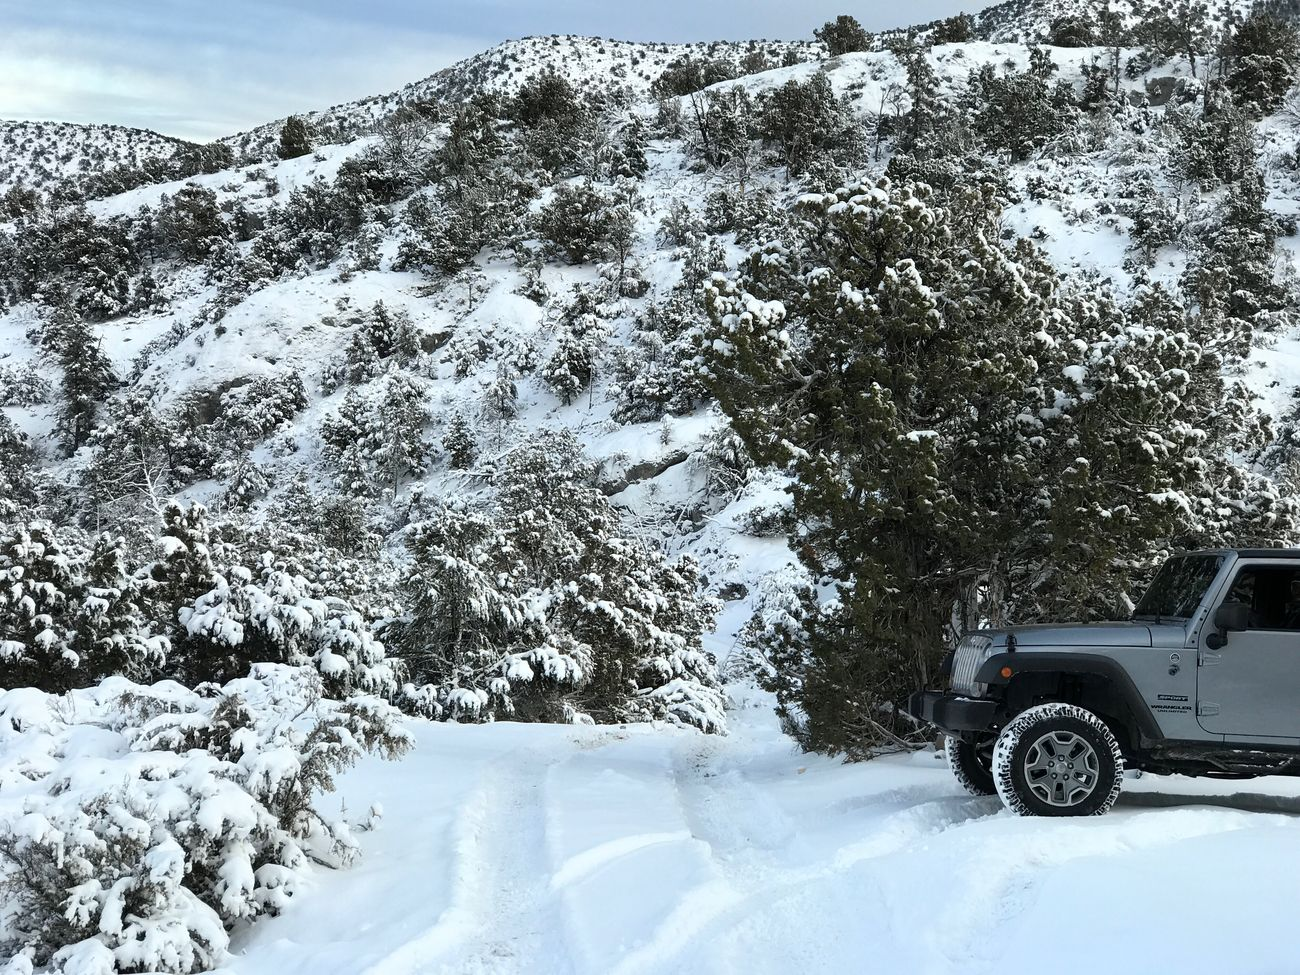 Snow Winter Cold Temperature Nature Transportation Land Vehicle Mode Of Transport Beauty In Nature Day Outdoors Tree One Person 97mf3r Wrangler Jeep Life